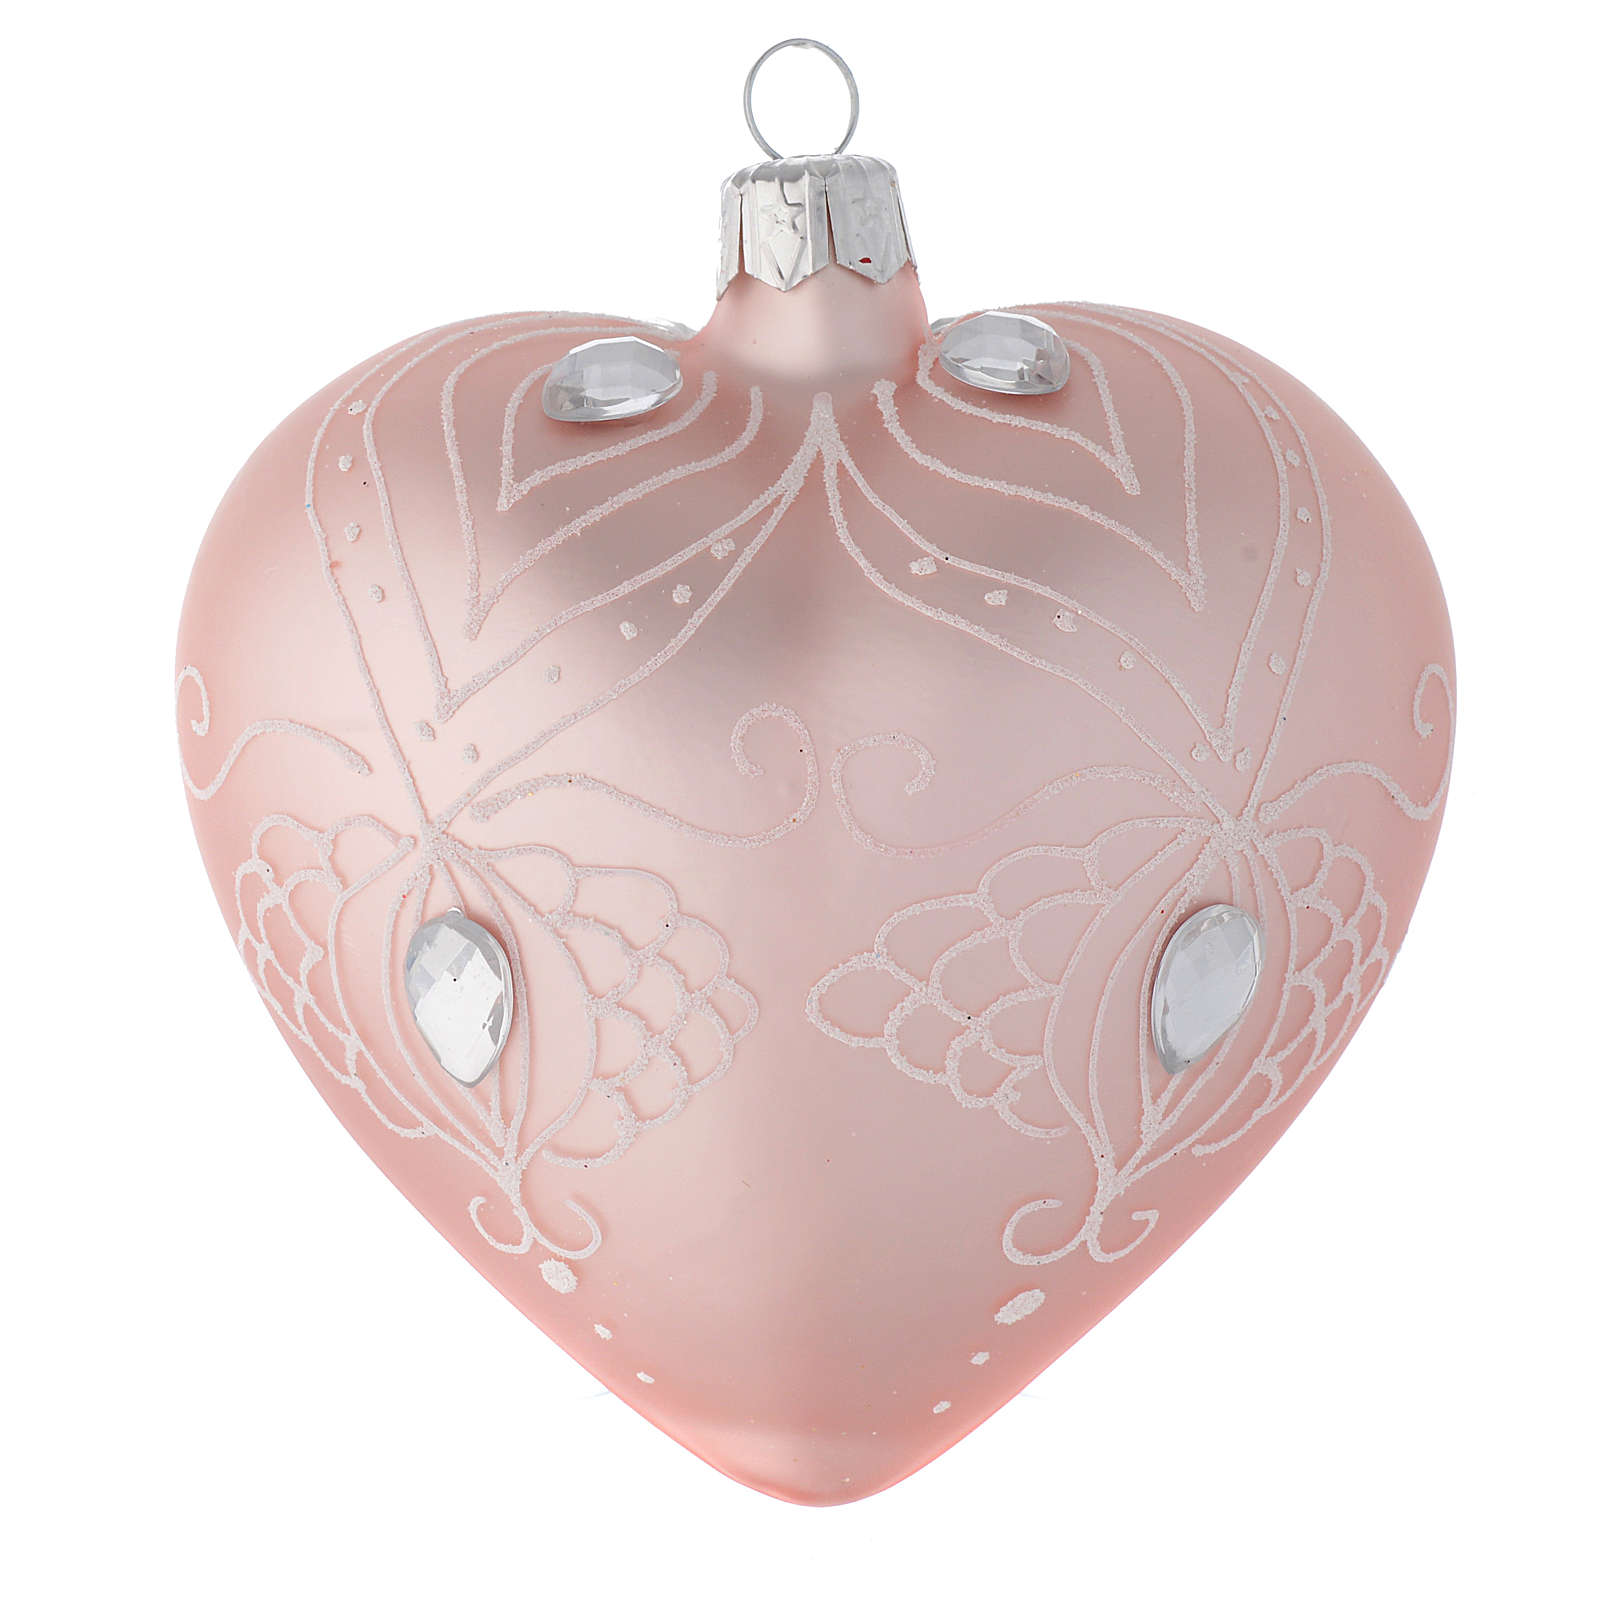 Heart Shaped Bauble in pink blown glass with white tree decoration 100mm 4